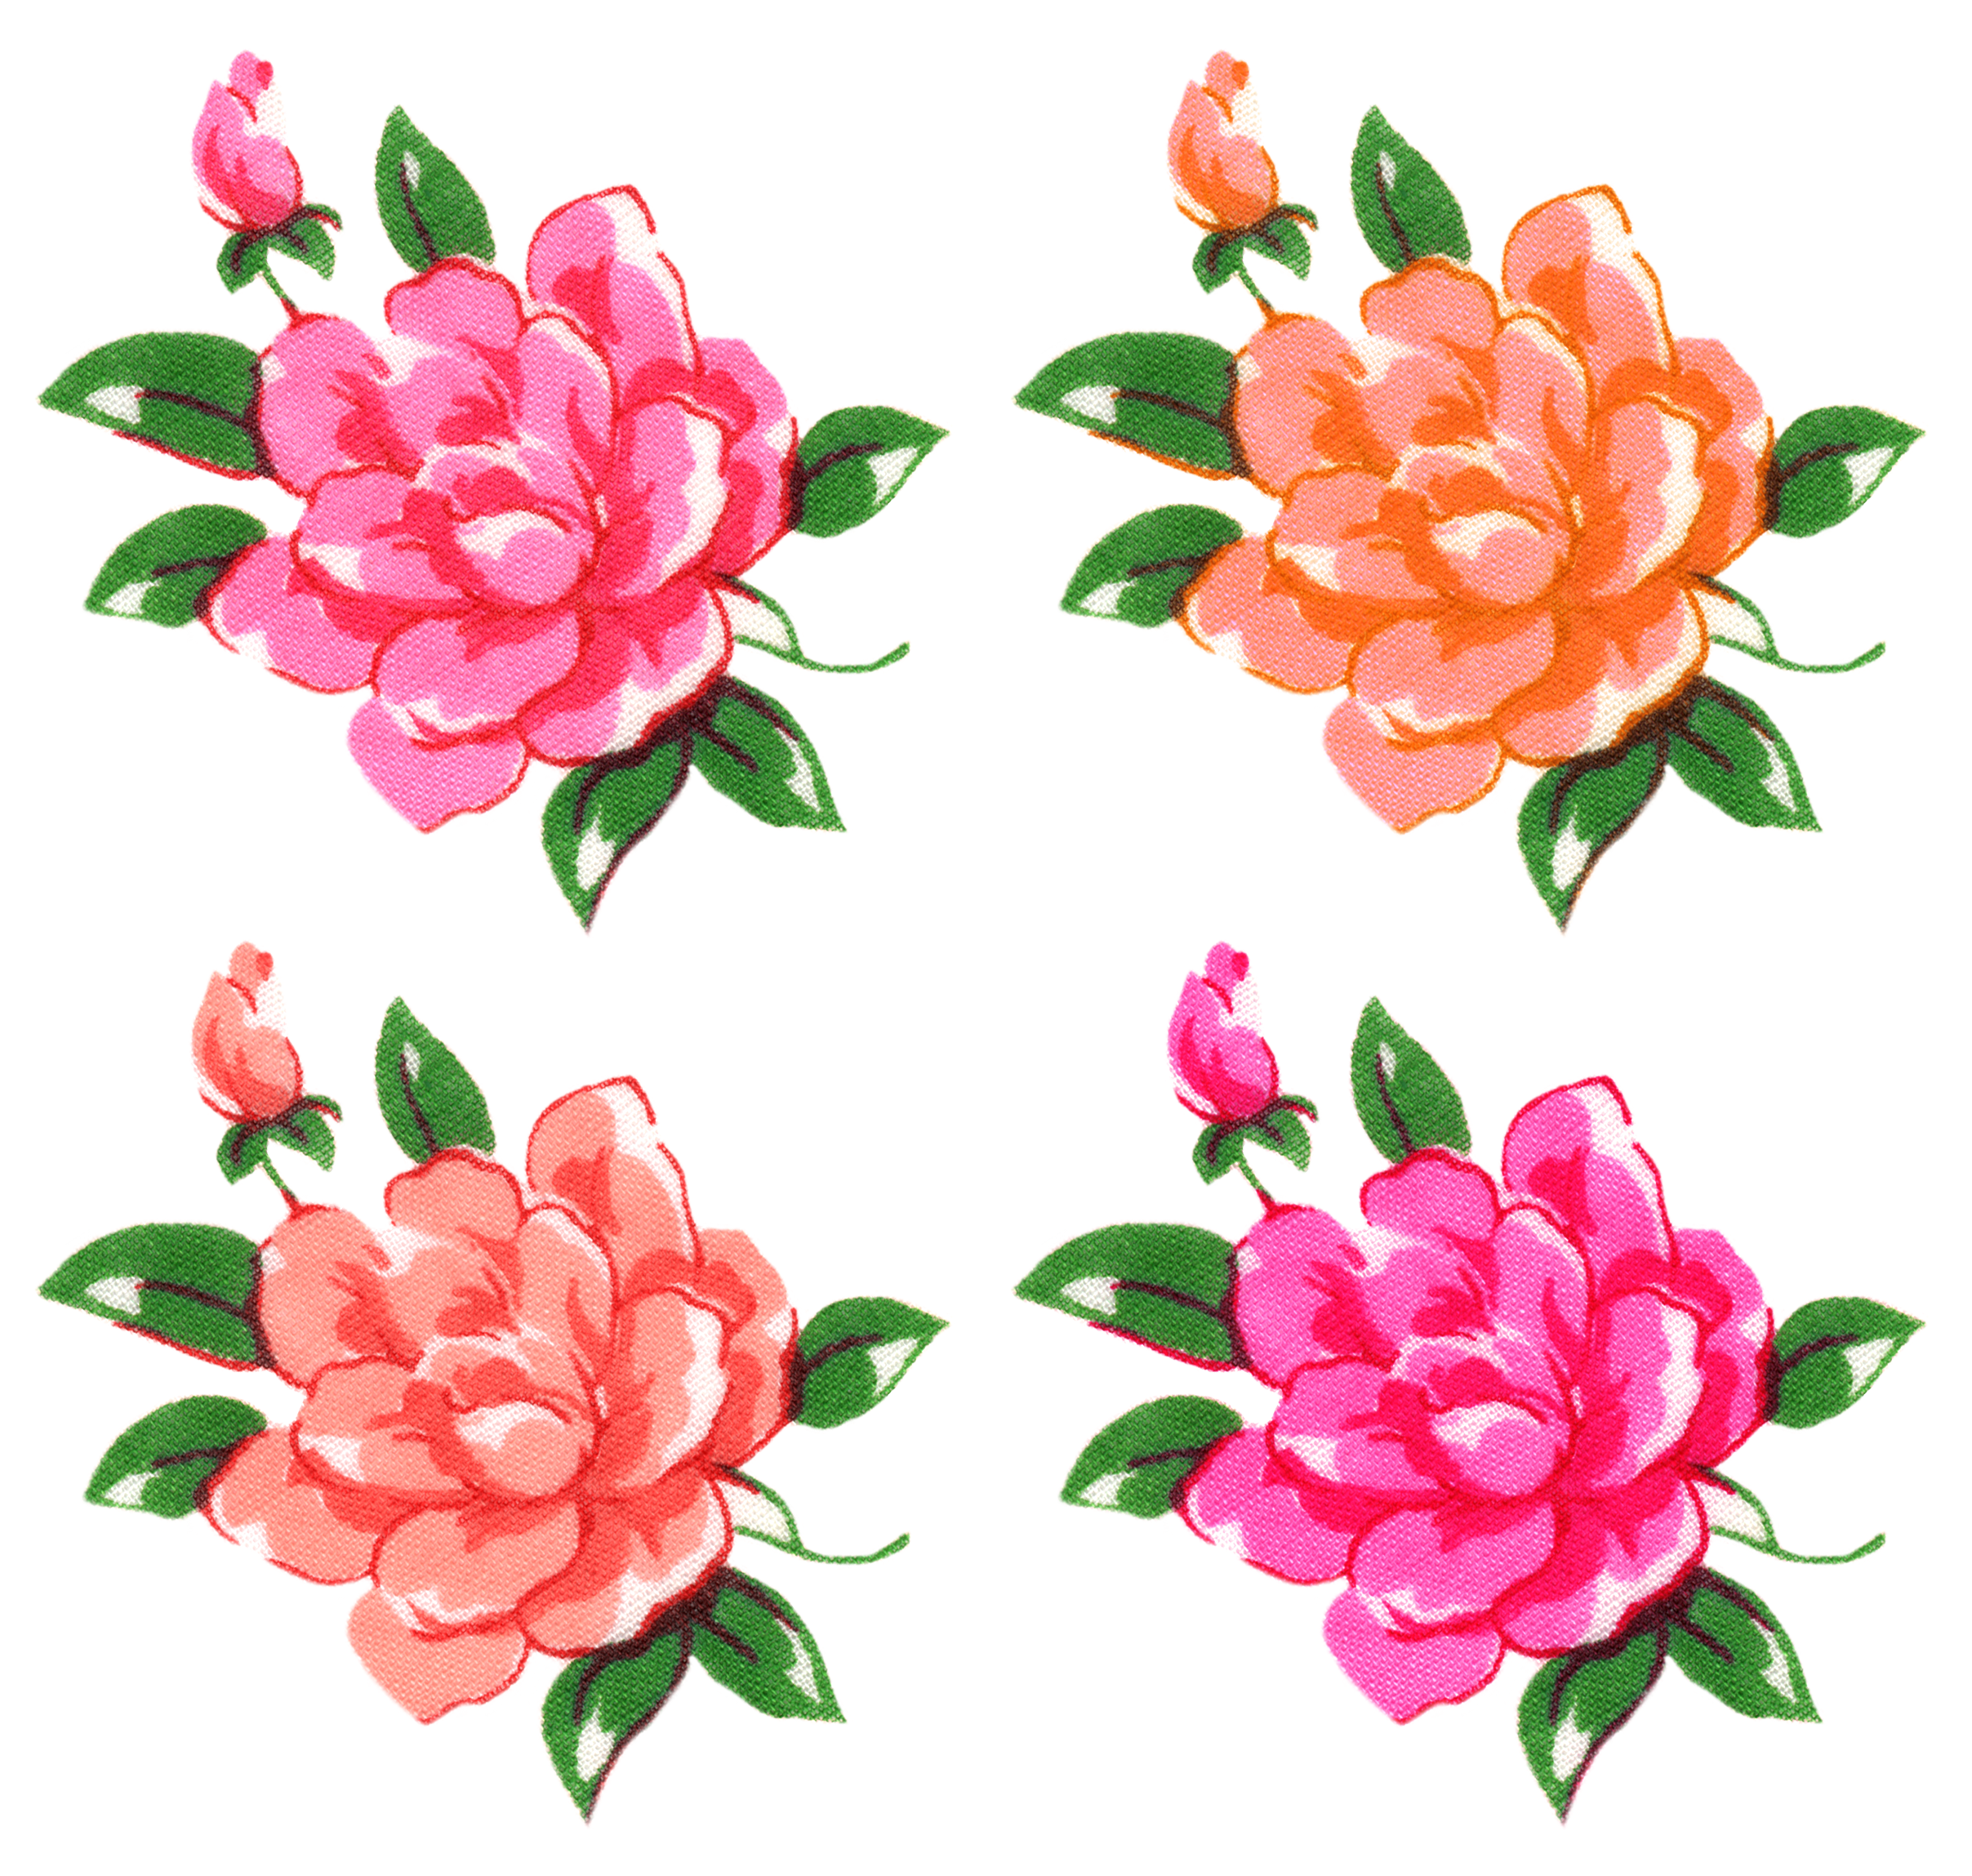 ... Free-Digital-Vintage-Flow - Vintage Flower Clip Art